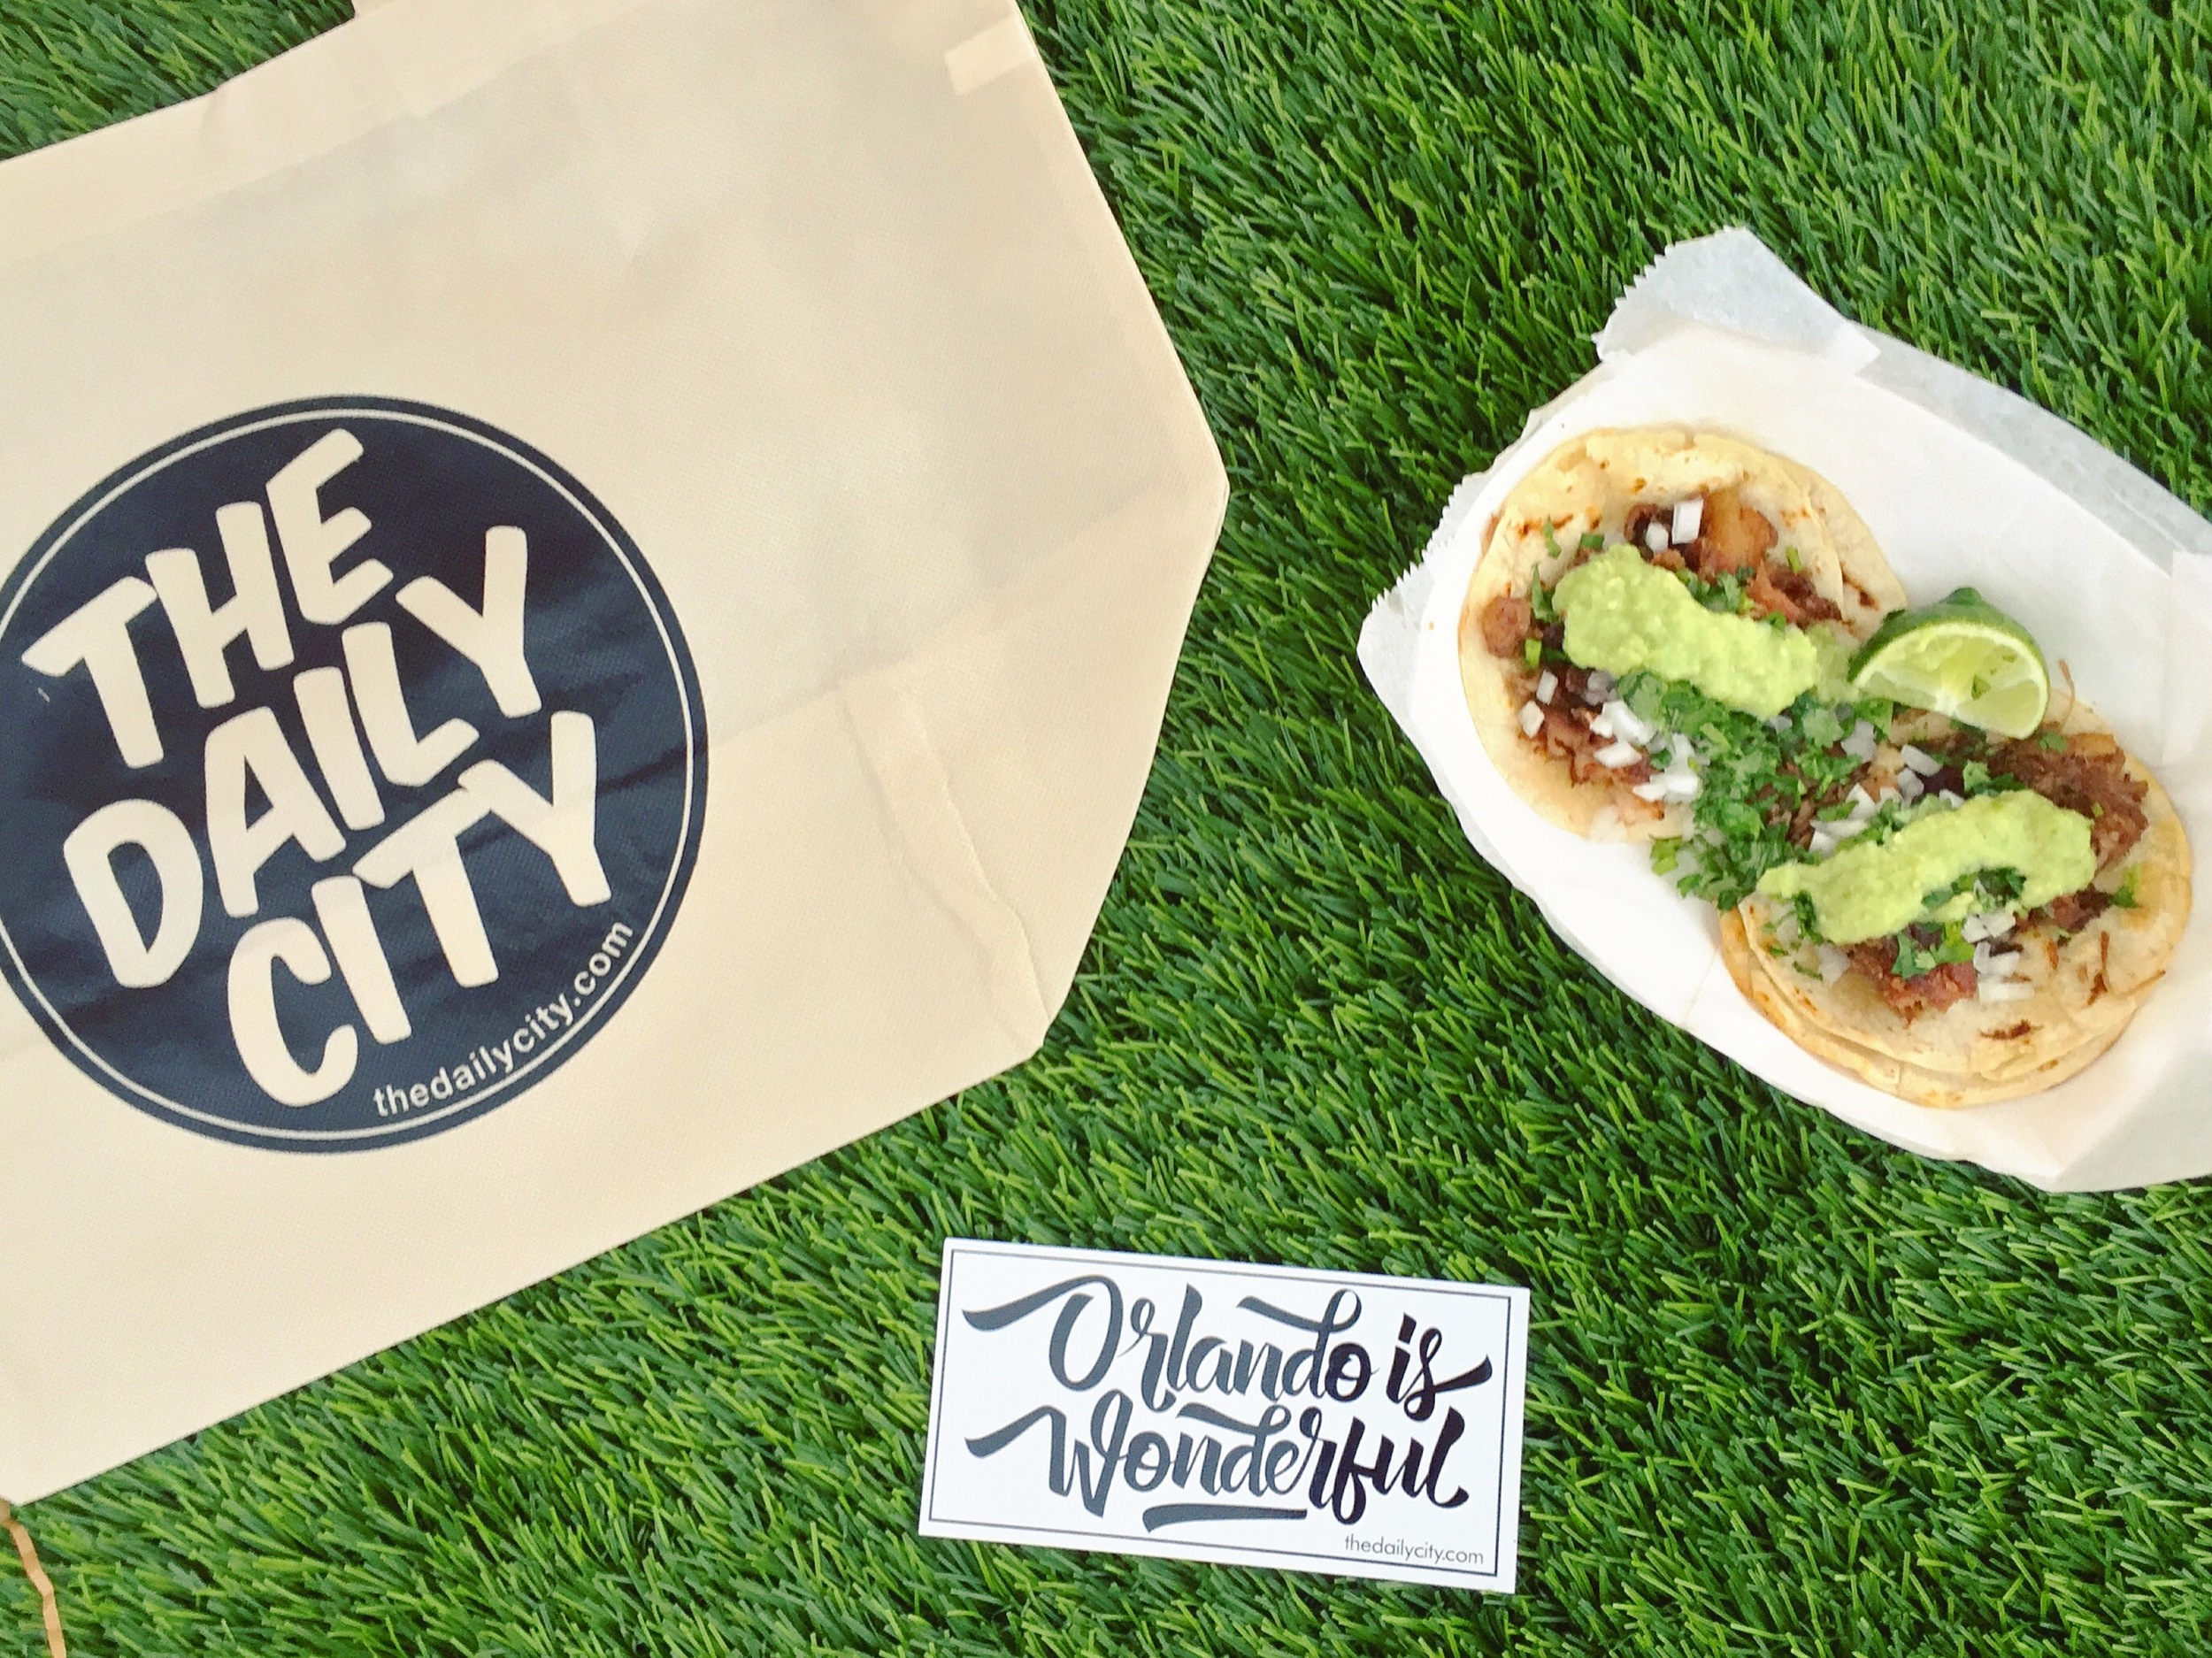 The Daily City + Hunger Street Tacos // Some of my favorite things at the Audubon Park Community Market. #ORLANDOISWONDERFUL